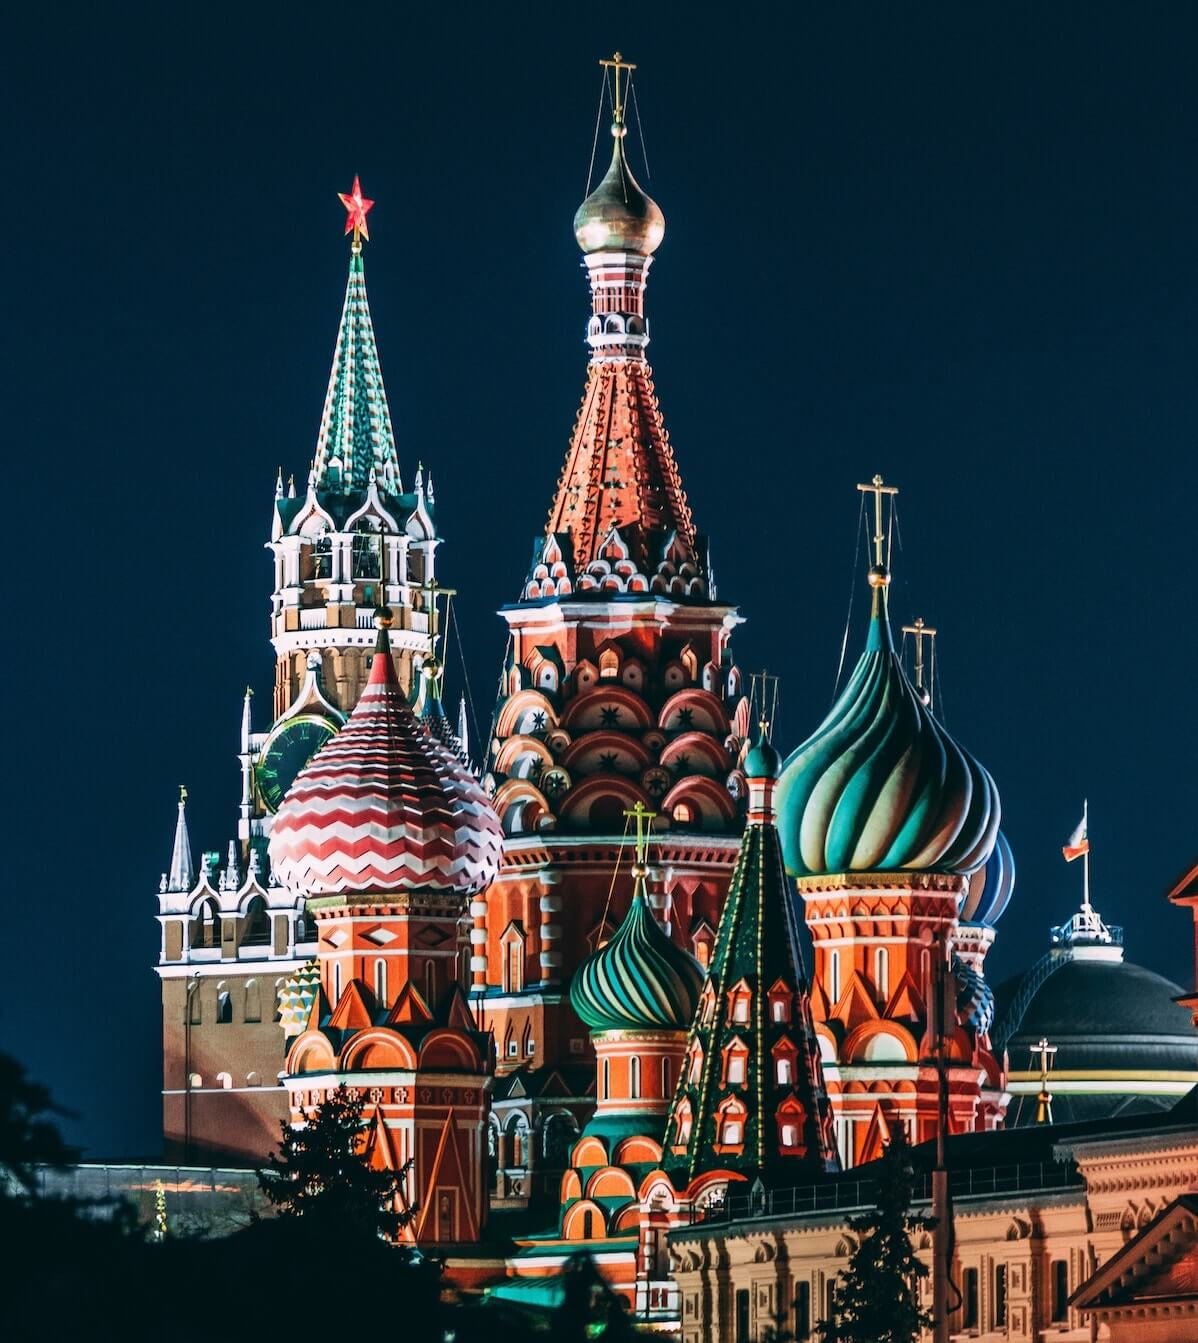 moscou visiter russie saint basile cathedrale